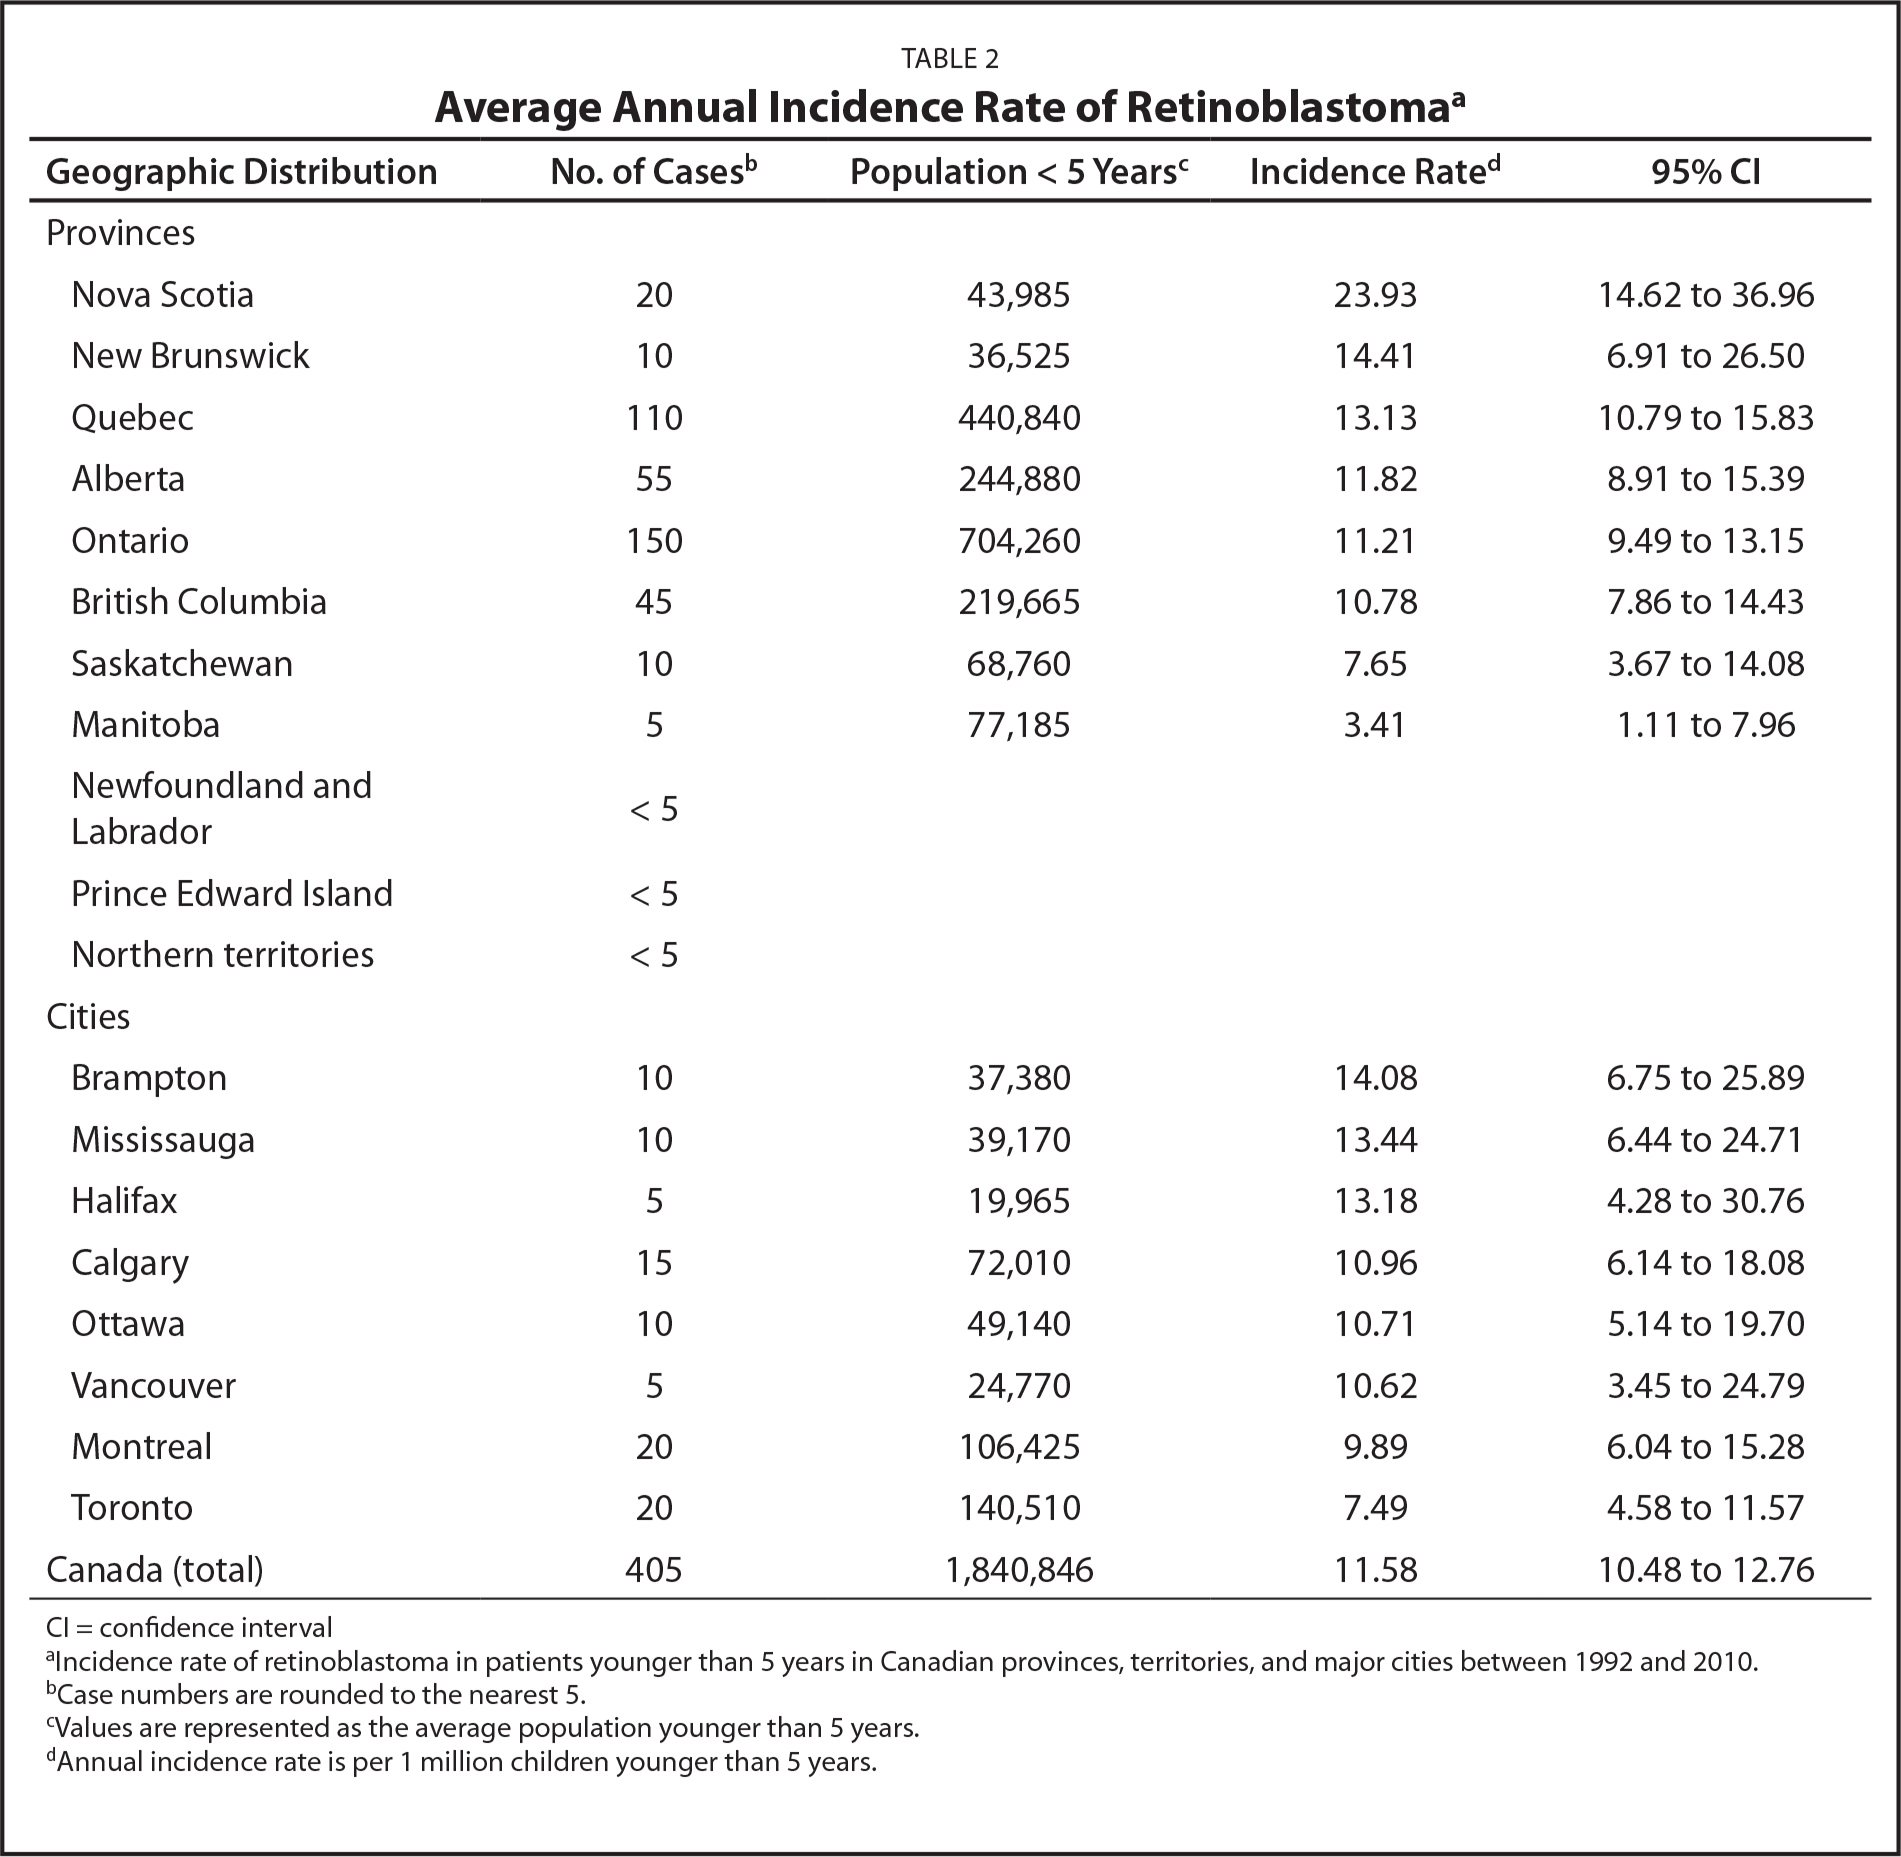 Average Annual Incidence Rate of Retinoblastomaa